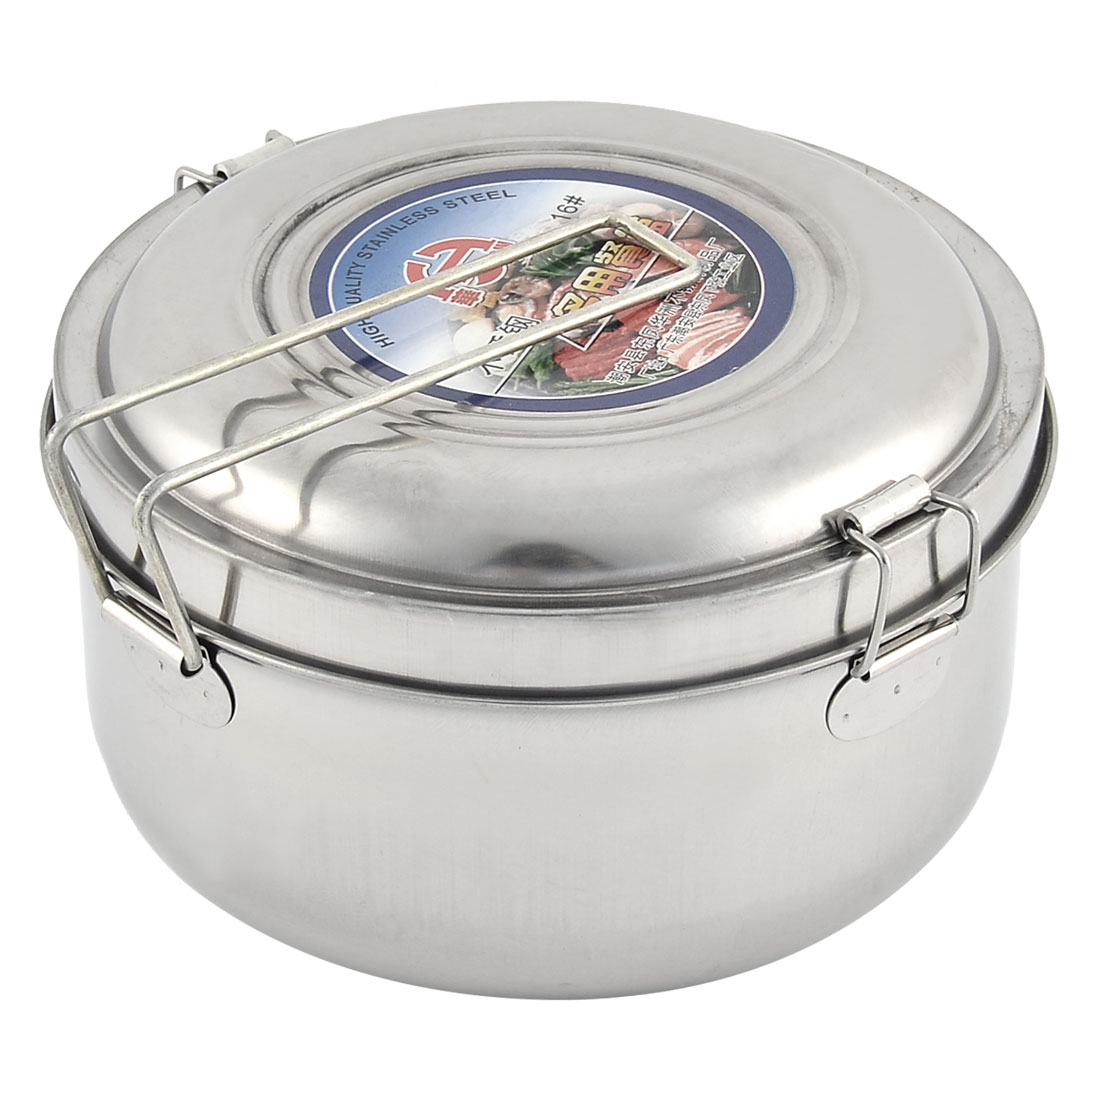 Stainless Steel Round 2 Layers School Lunch Box Food Container Silver Tone